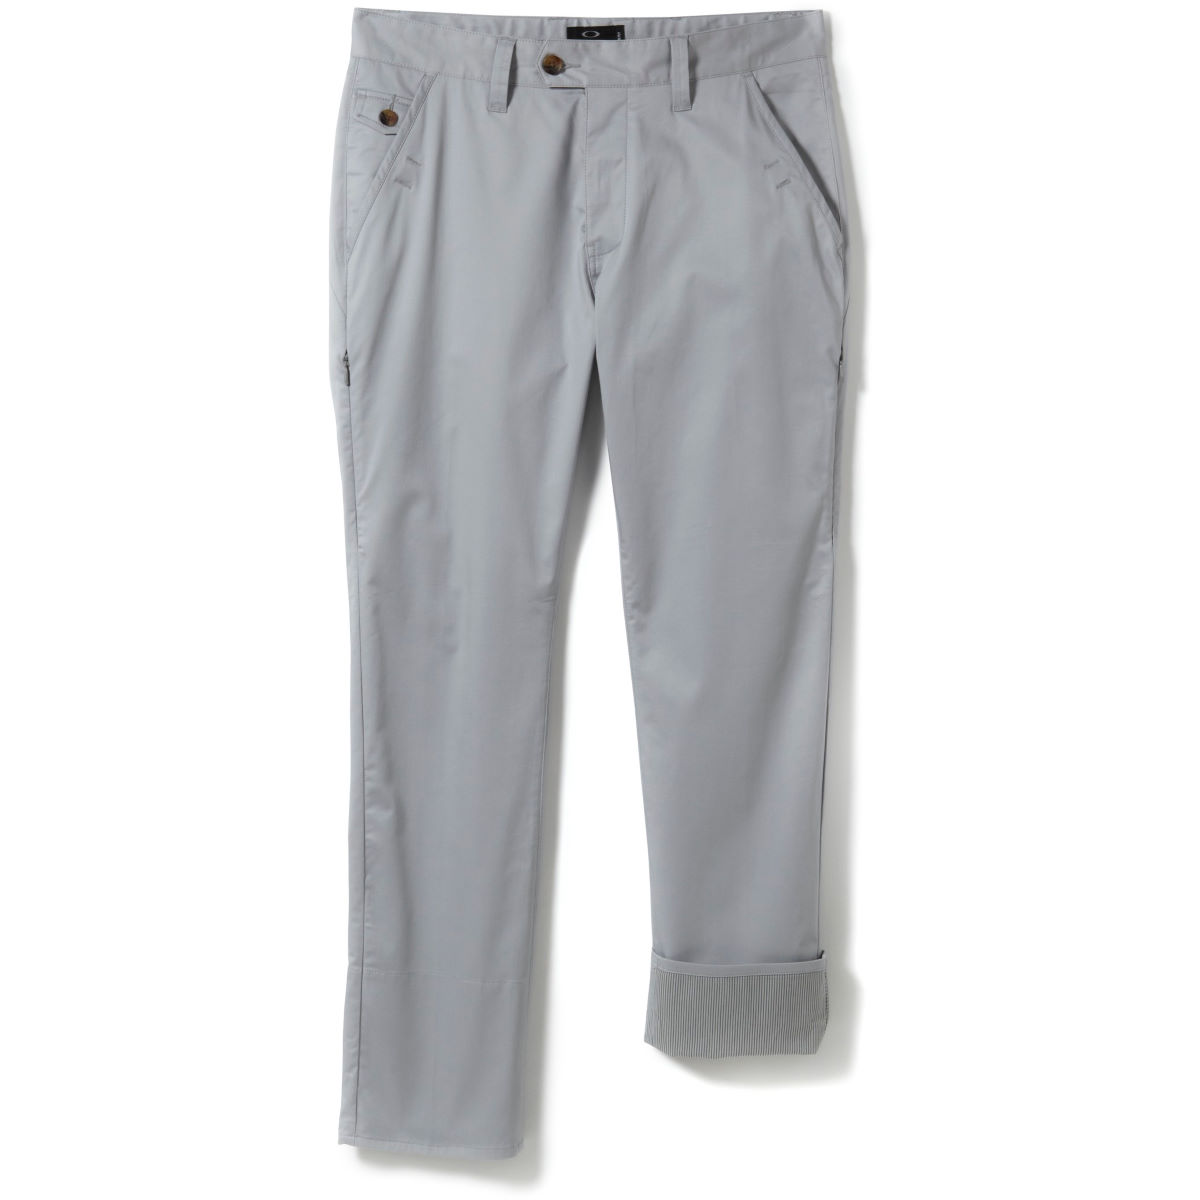 Oakley Icon Chino Pant - 32 Grey Slate | Casual Pants